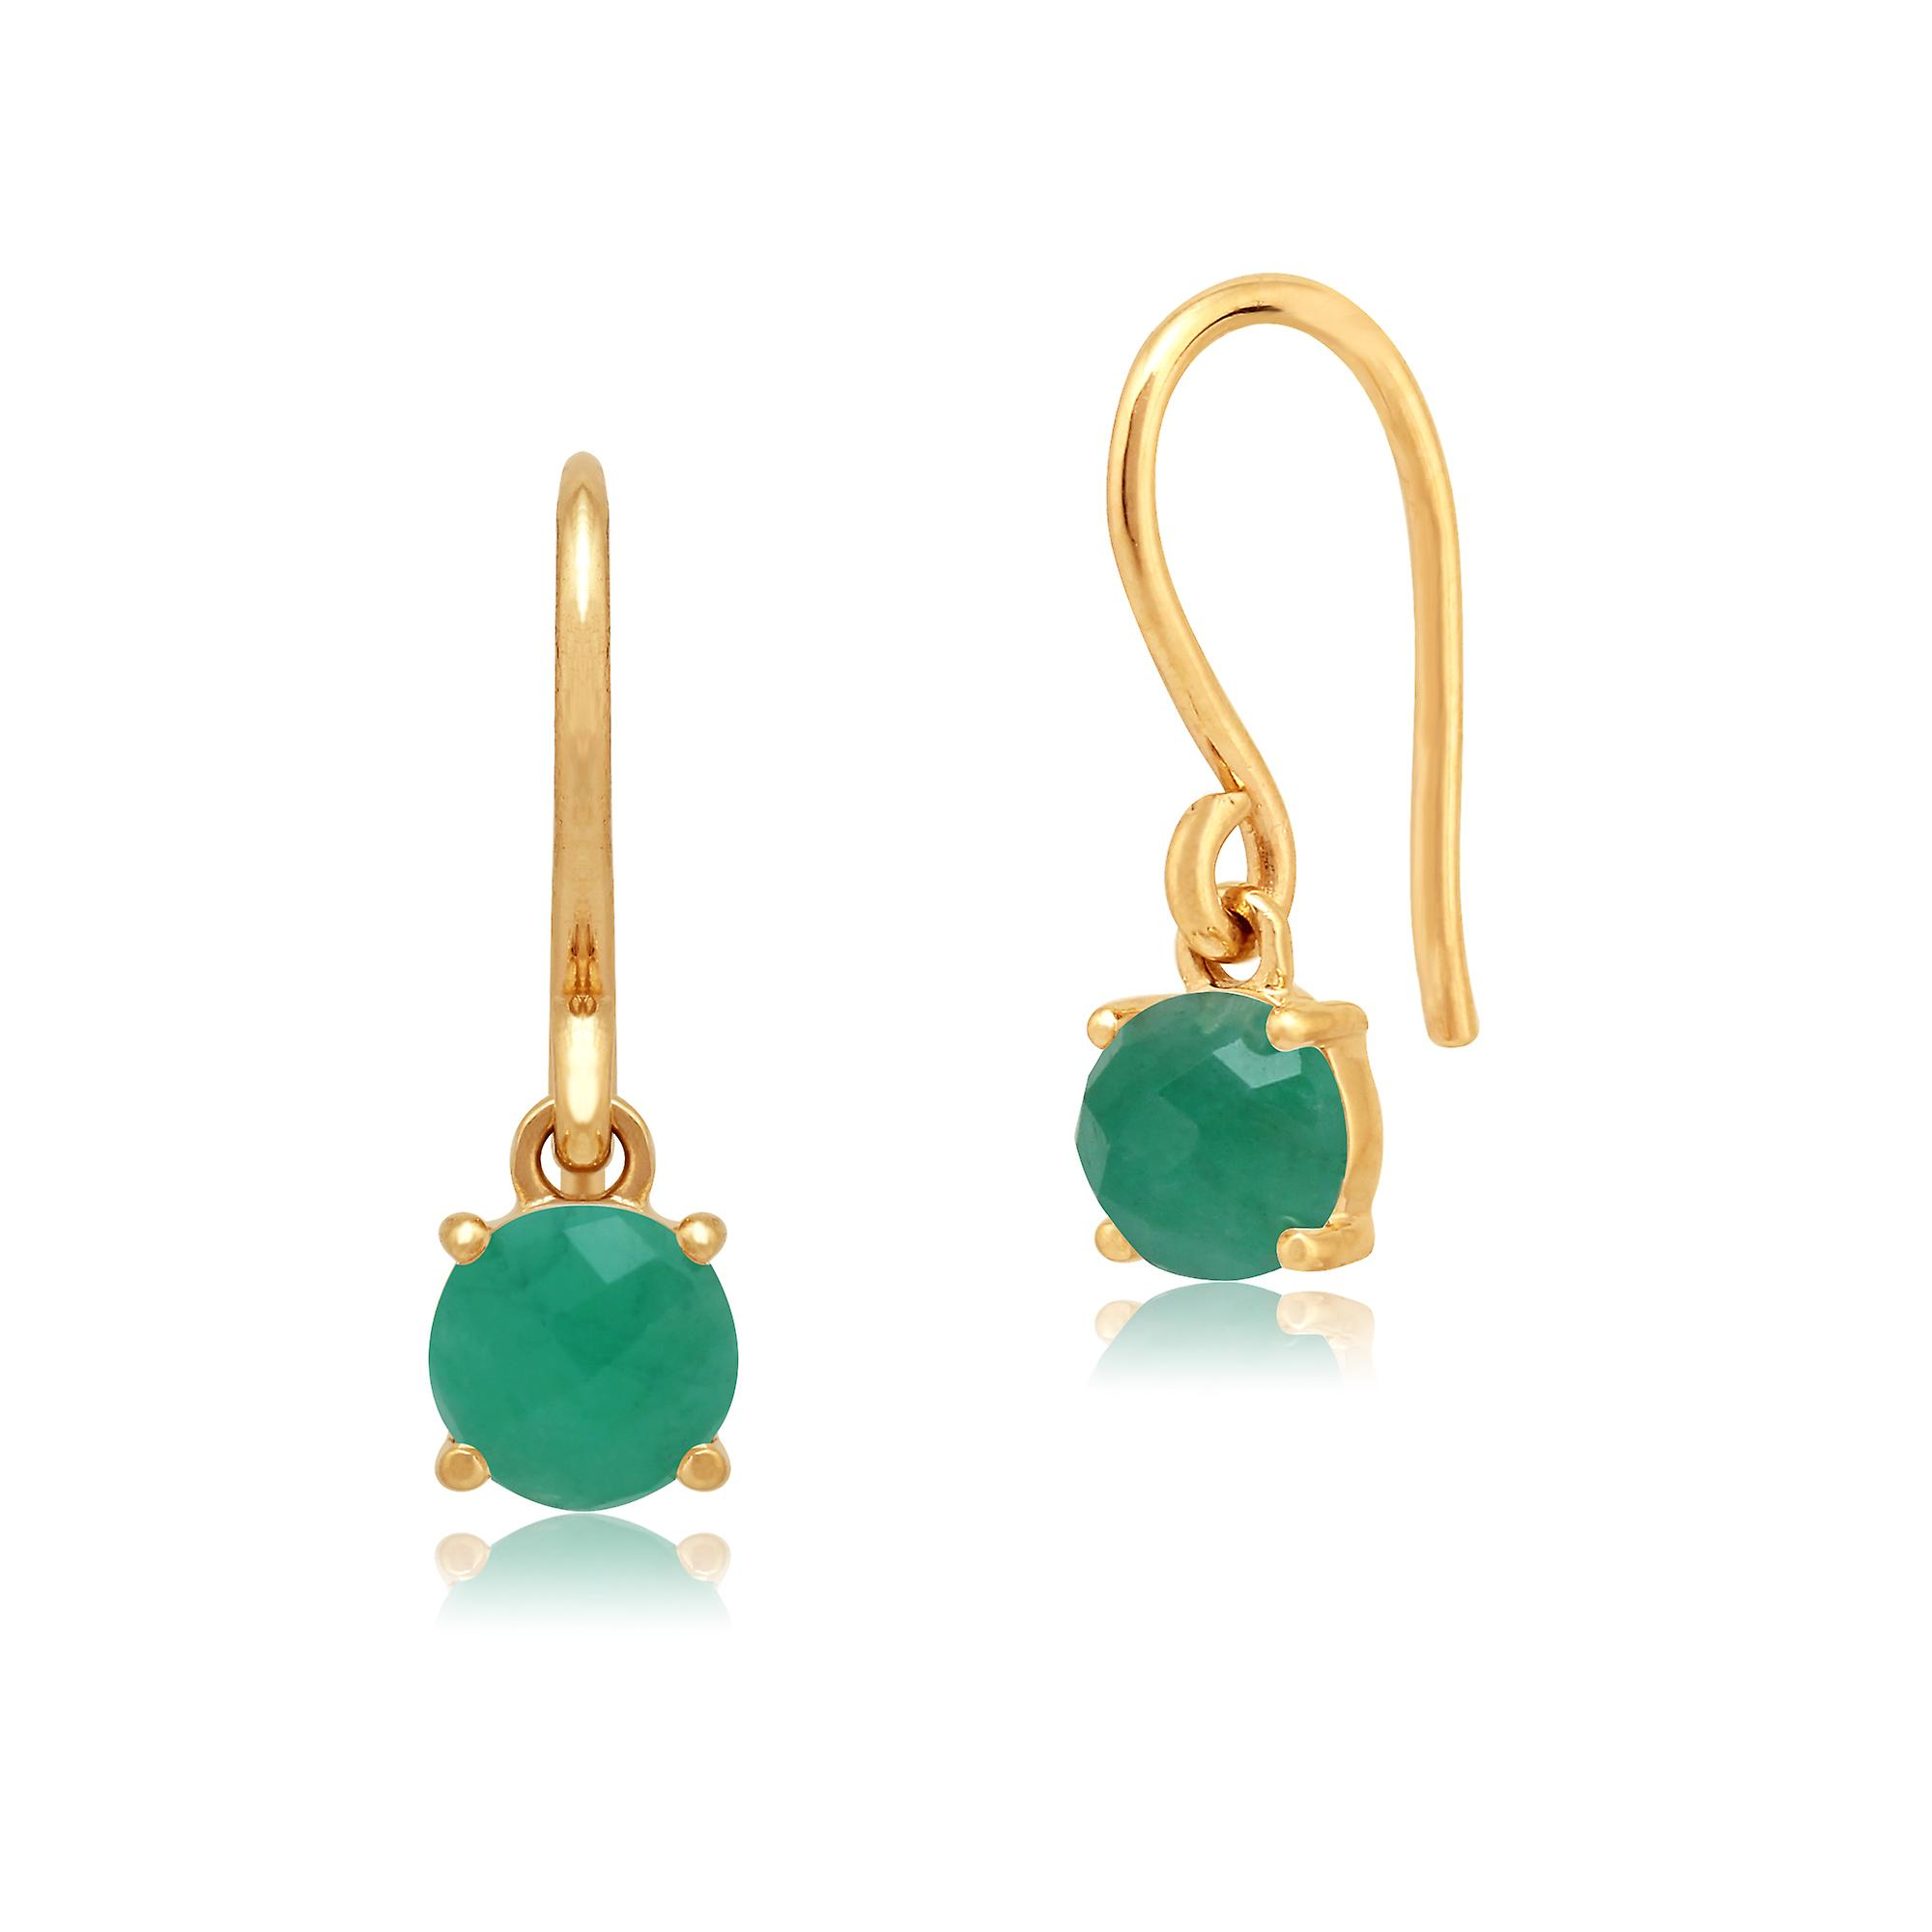 Amour Damier 9ct jaune or 0.72ct Claw Set Emerald Drop Earrings by Gemondo